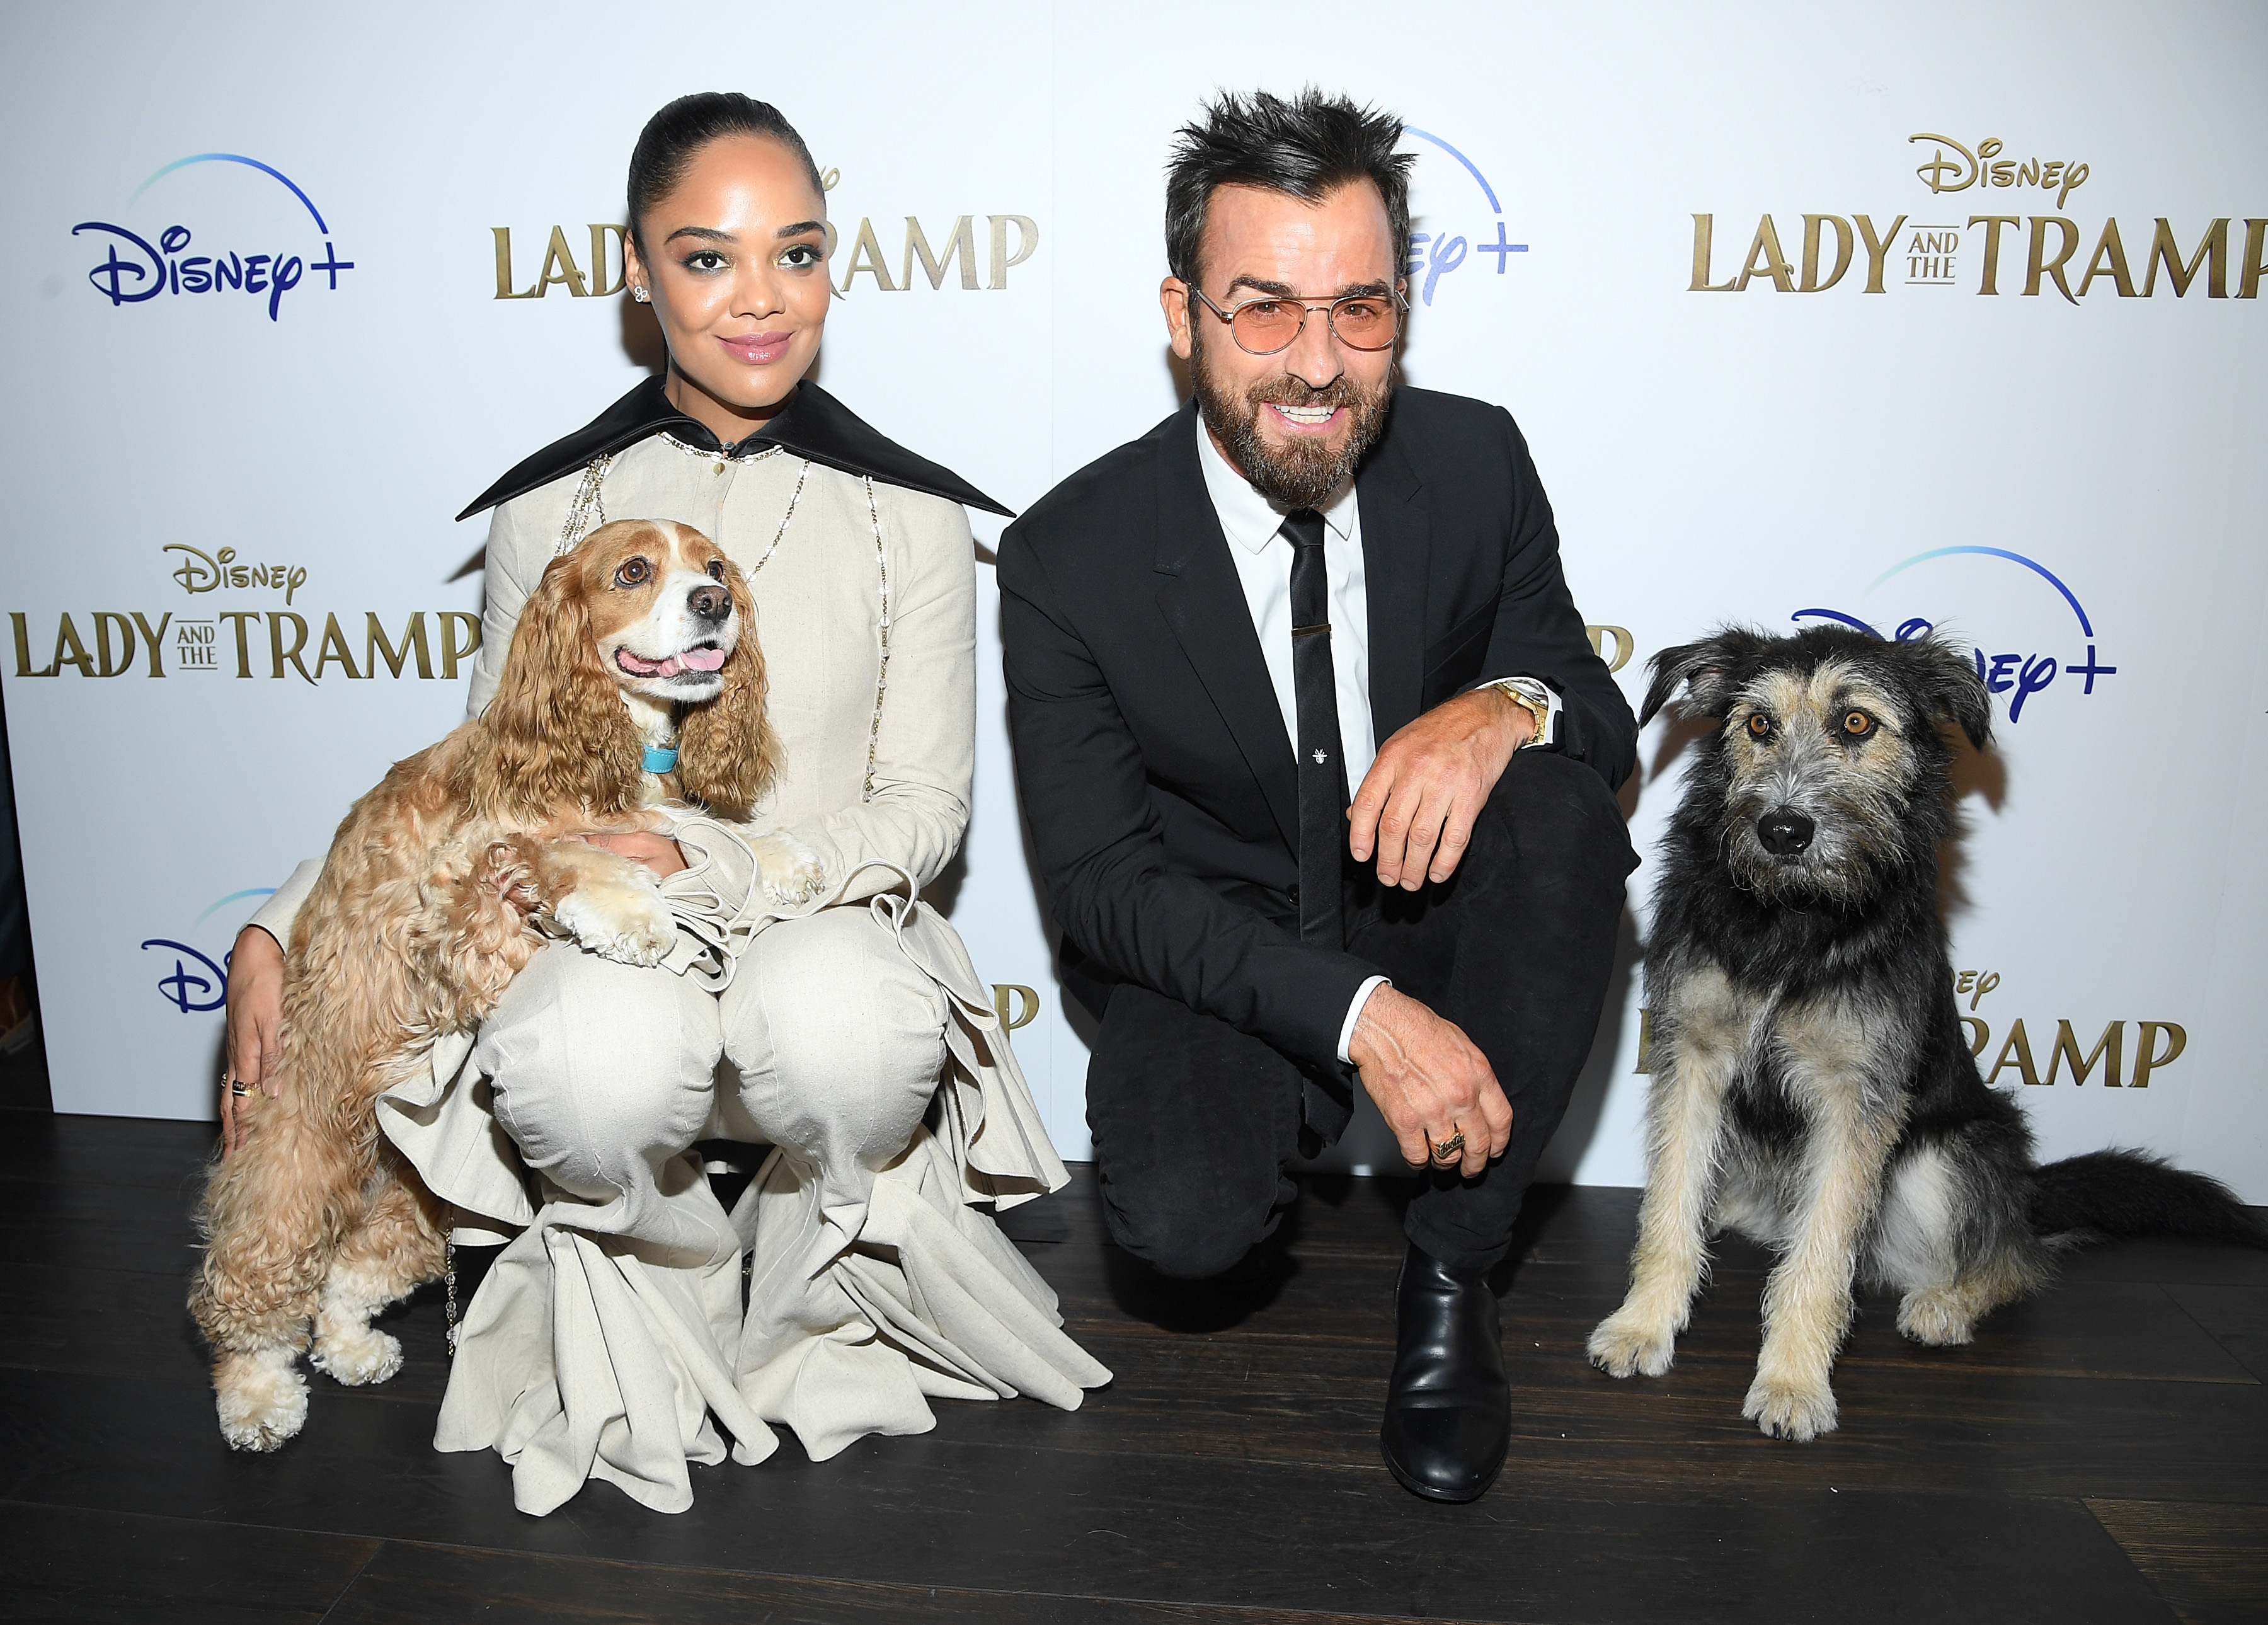 The Cast Of Disney S Lady And The Tramp Premiere Movie In Nyc Beautifulballad